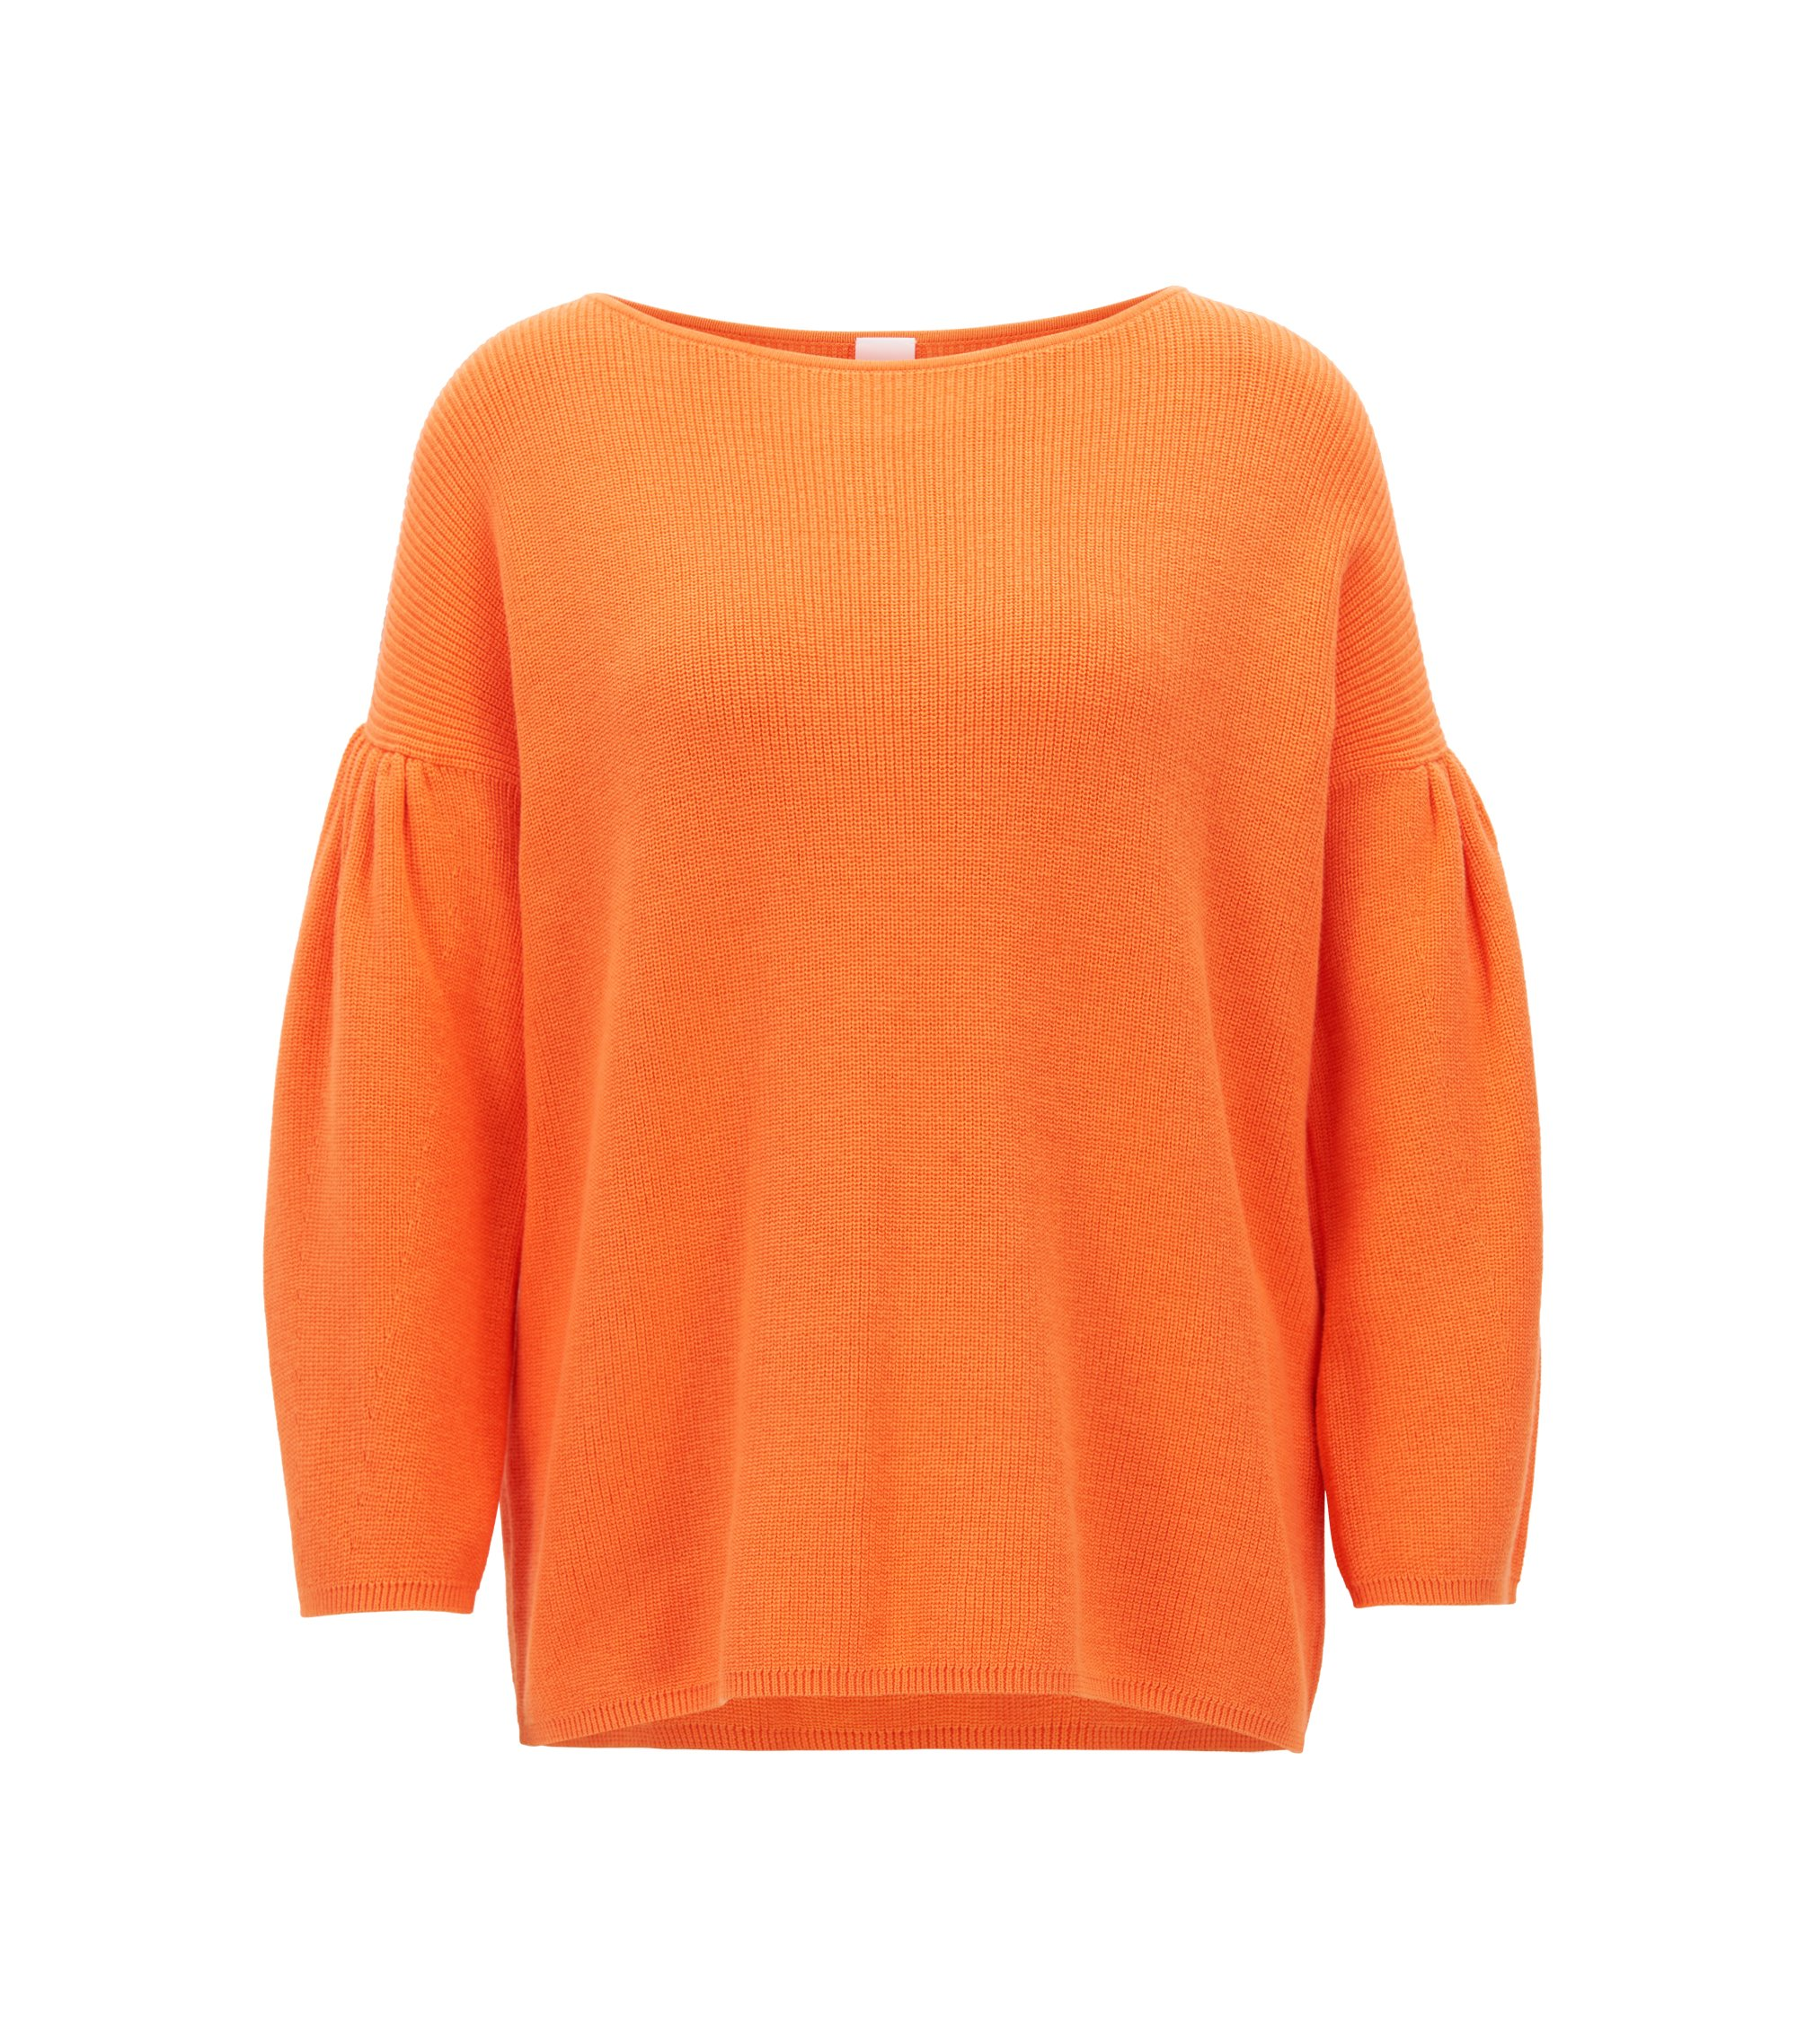 Boat-neck sweater with dropped shoulders and gathered sleeves, Orange